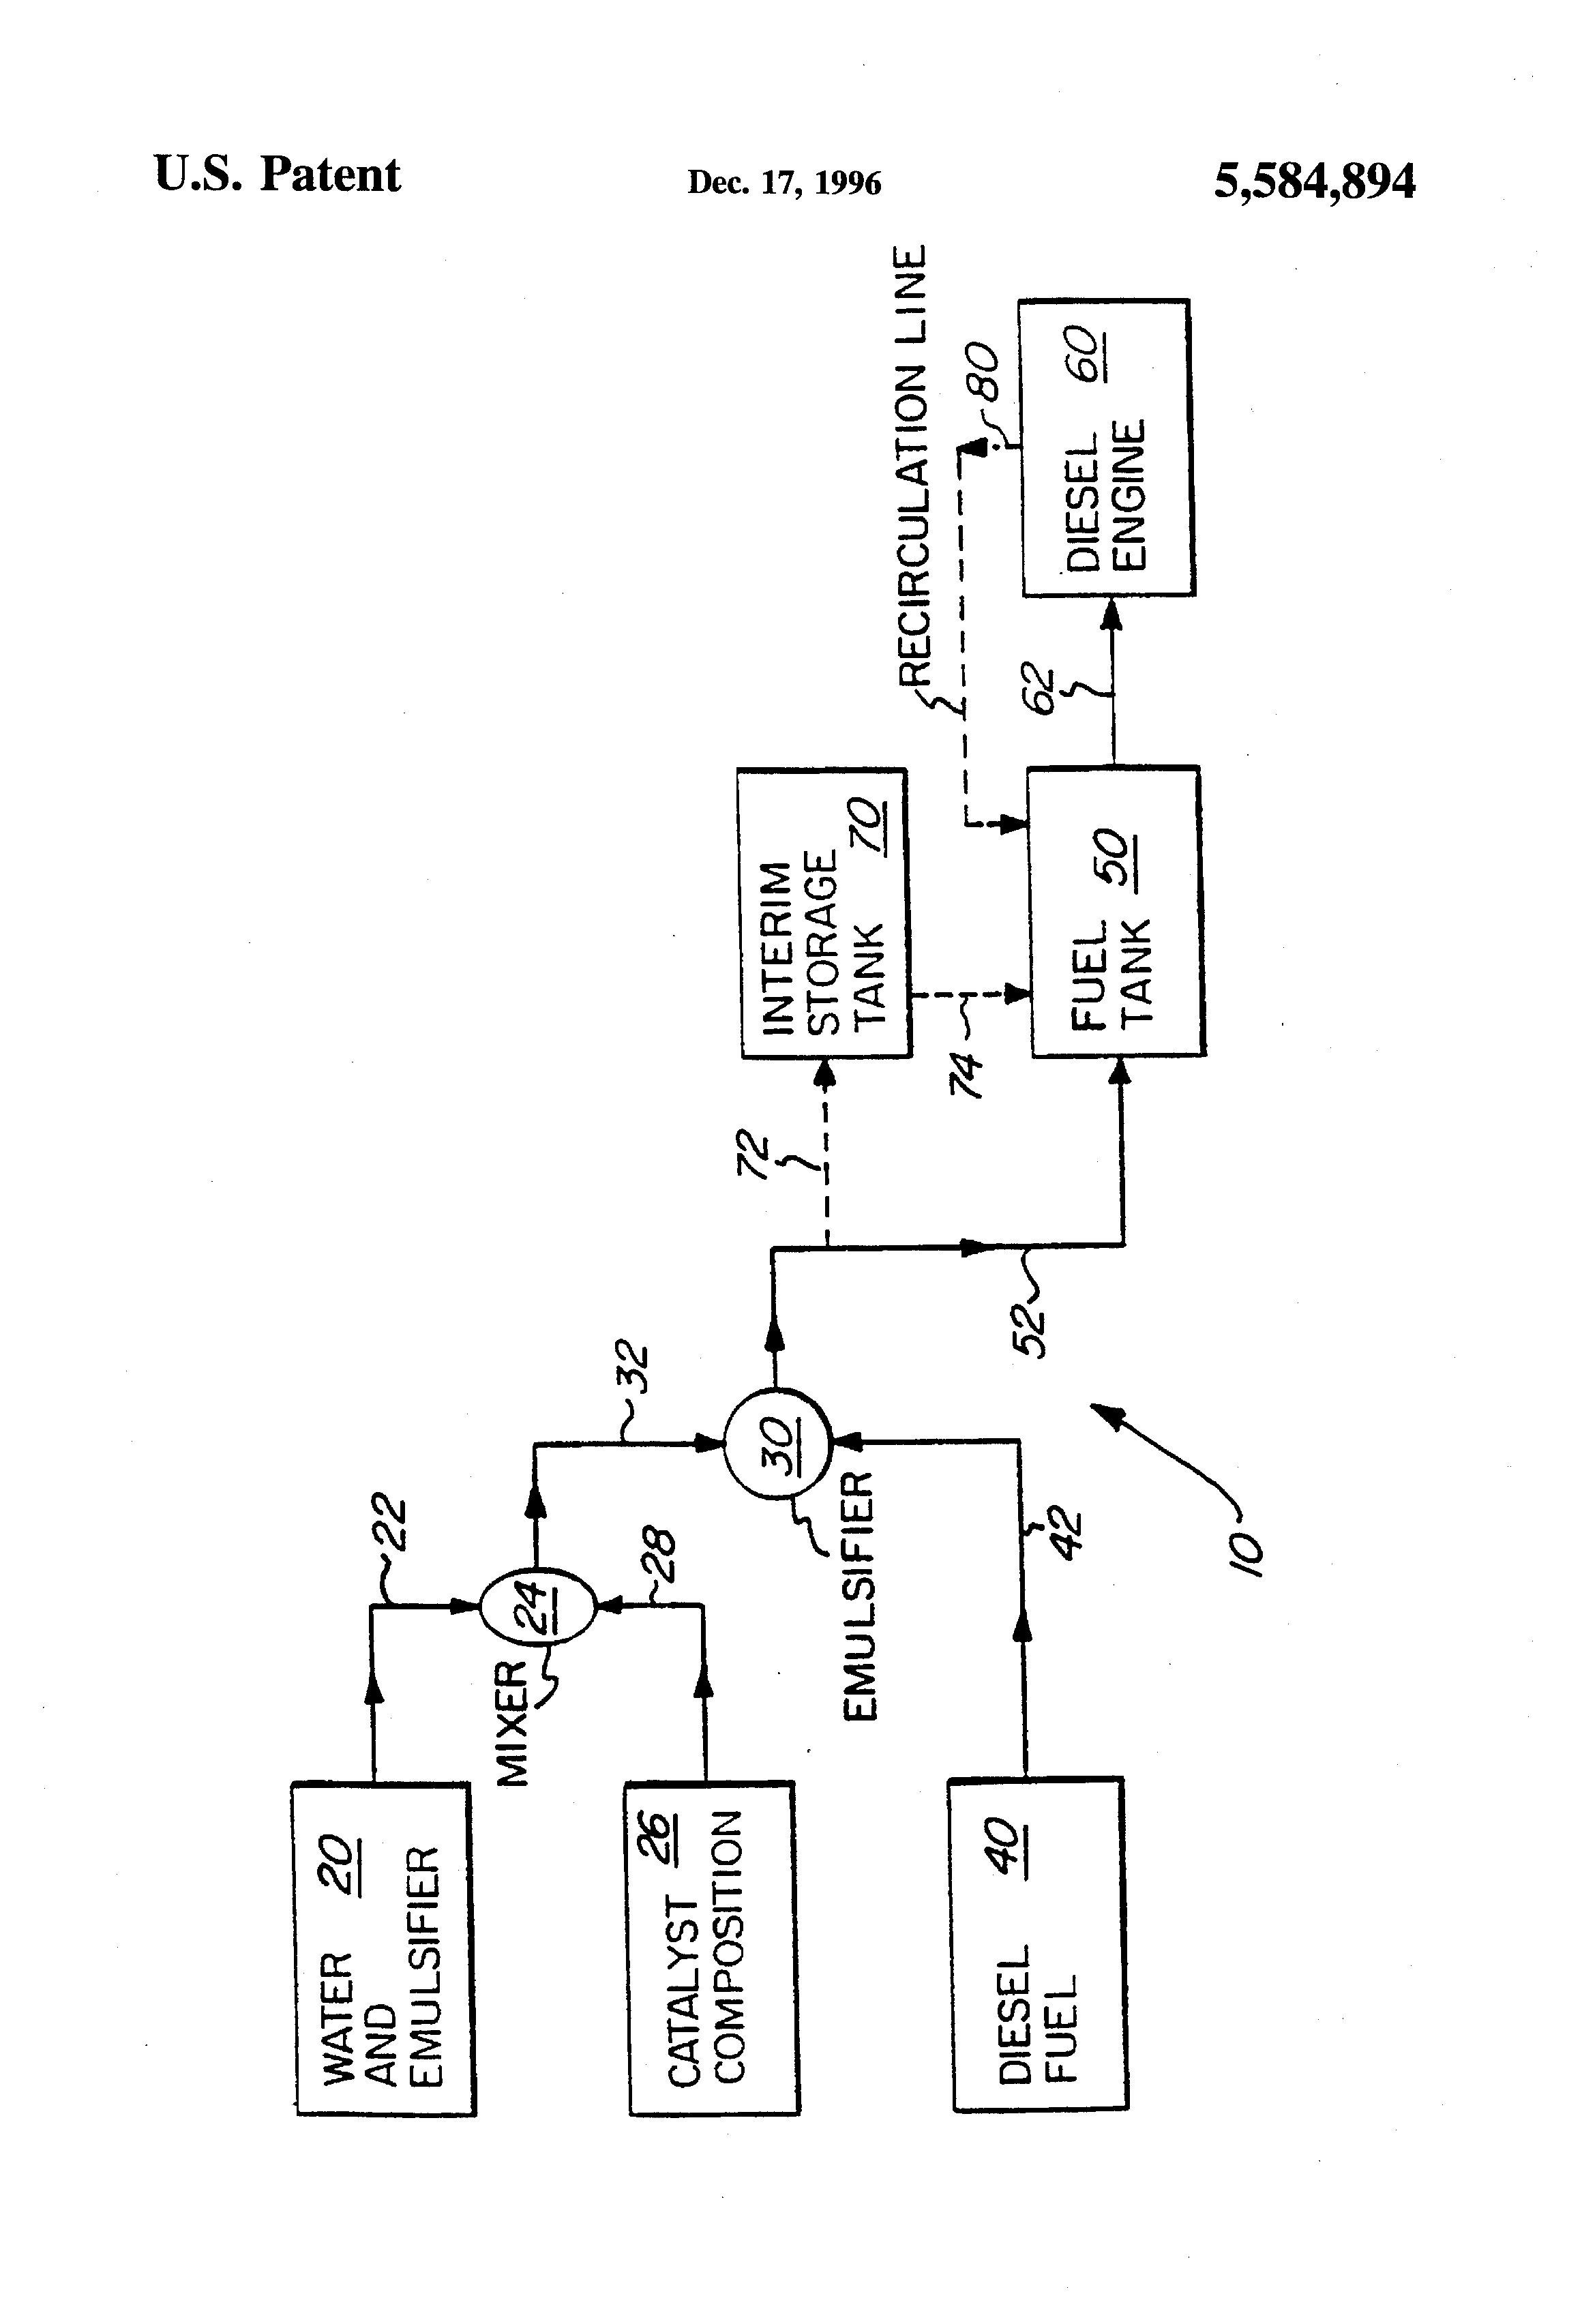 Patent Us5584894 Reduction Of Nitrogen Oxides Emissions From Burning Diesel Engine Fuel Diagram Drawing